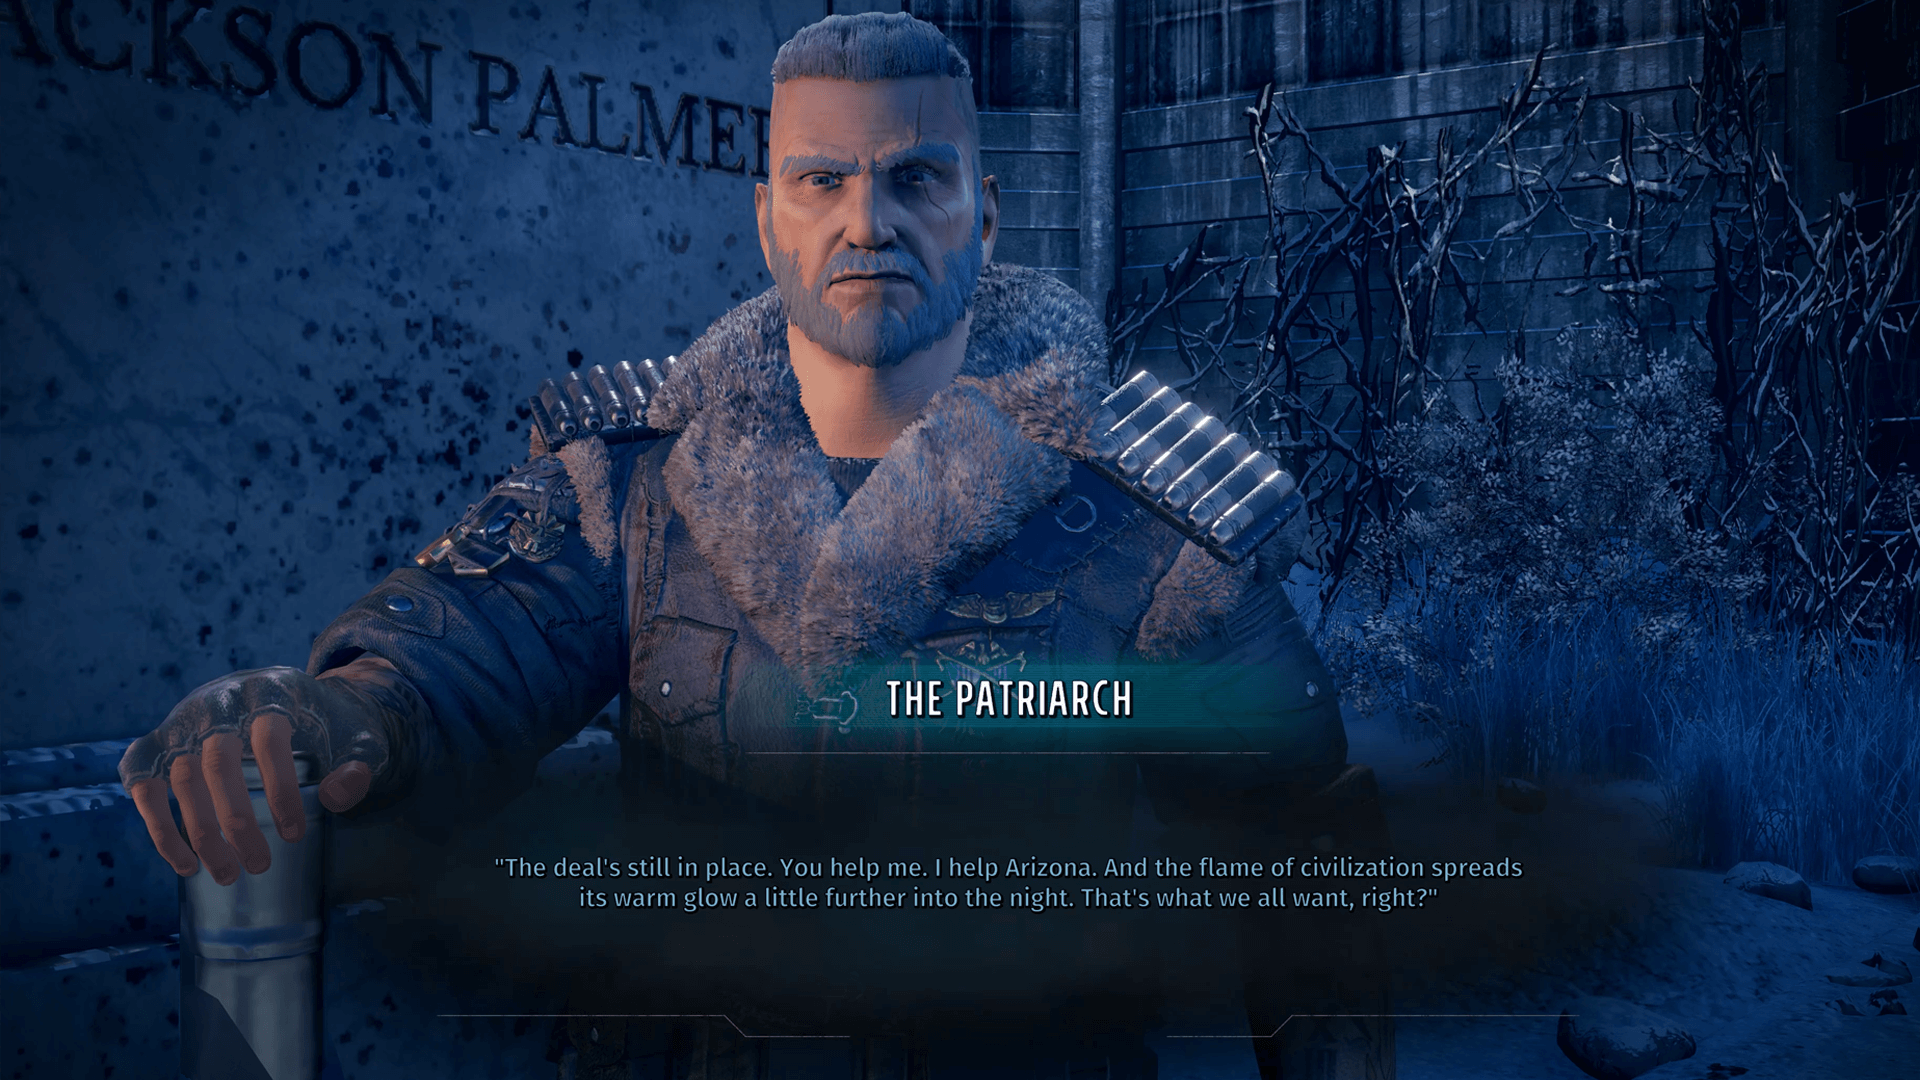 Wasteland 3 Might Make the Apocalypse Feel a Little Too Real